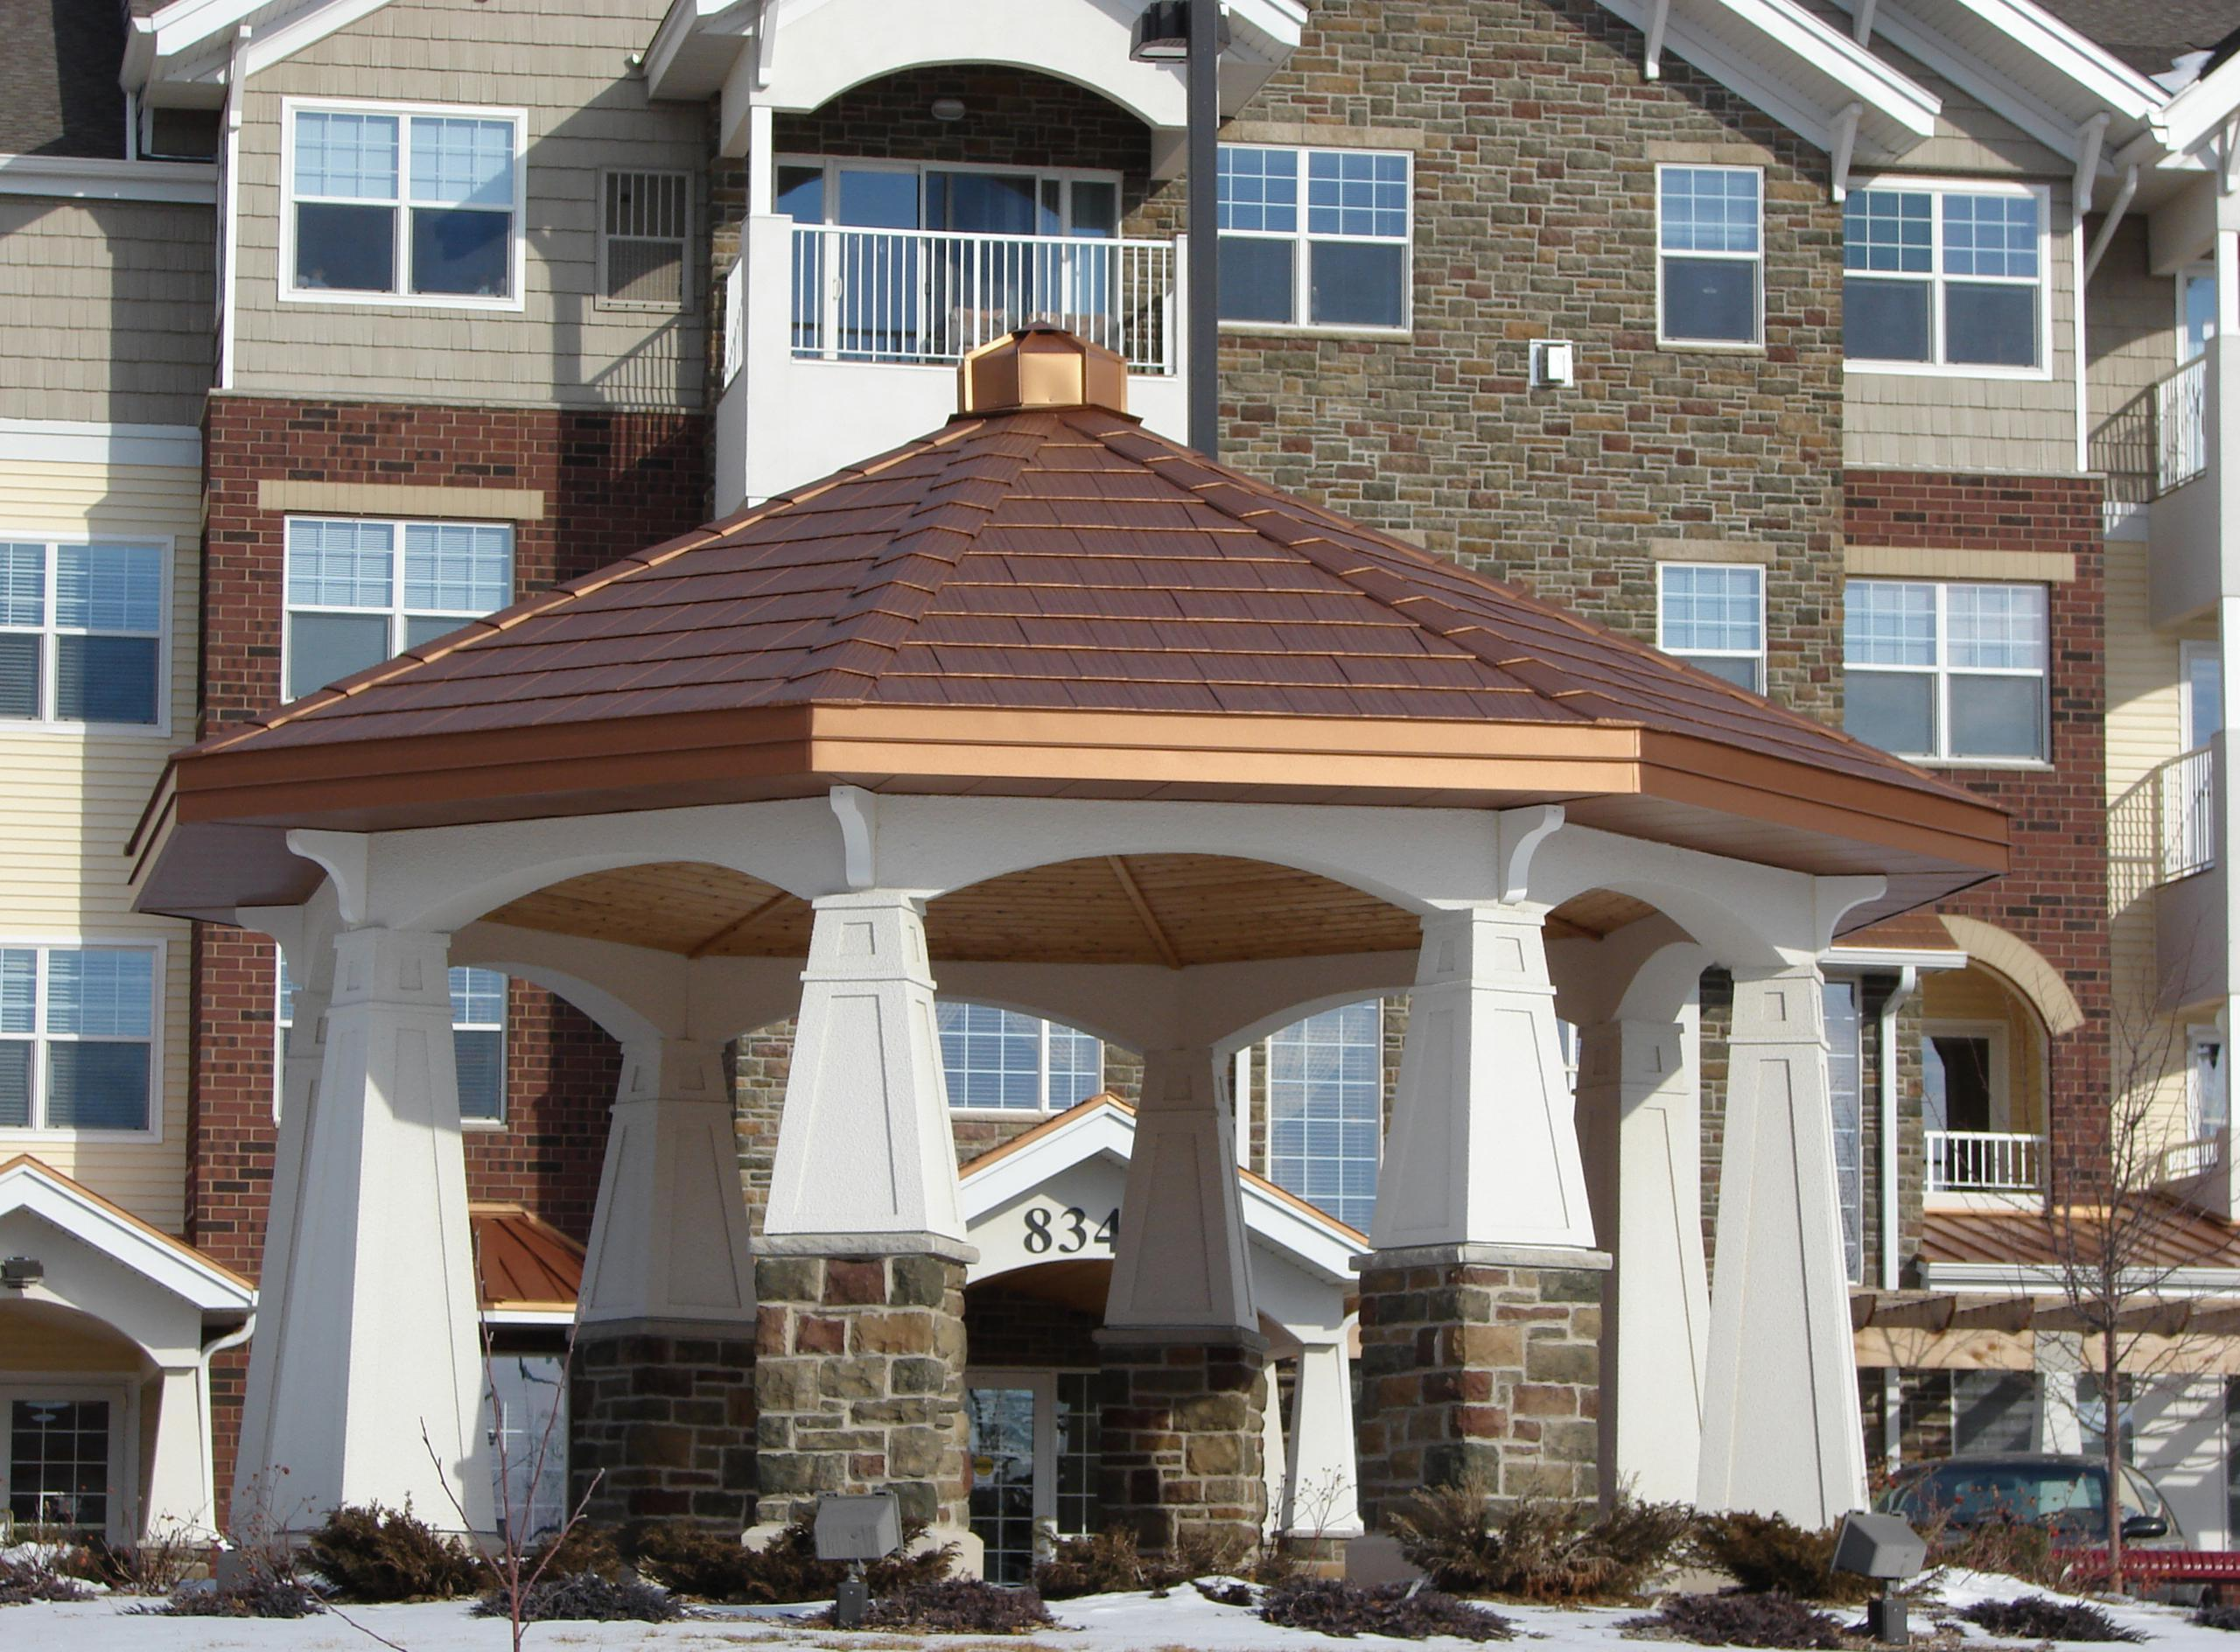 The gazebo located on the property of an apartment complex installed Arrowline Shake Copper Roofing to further accent the distinct features and architecture of the building.